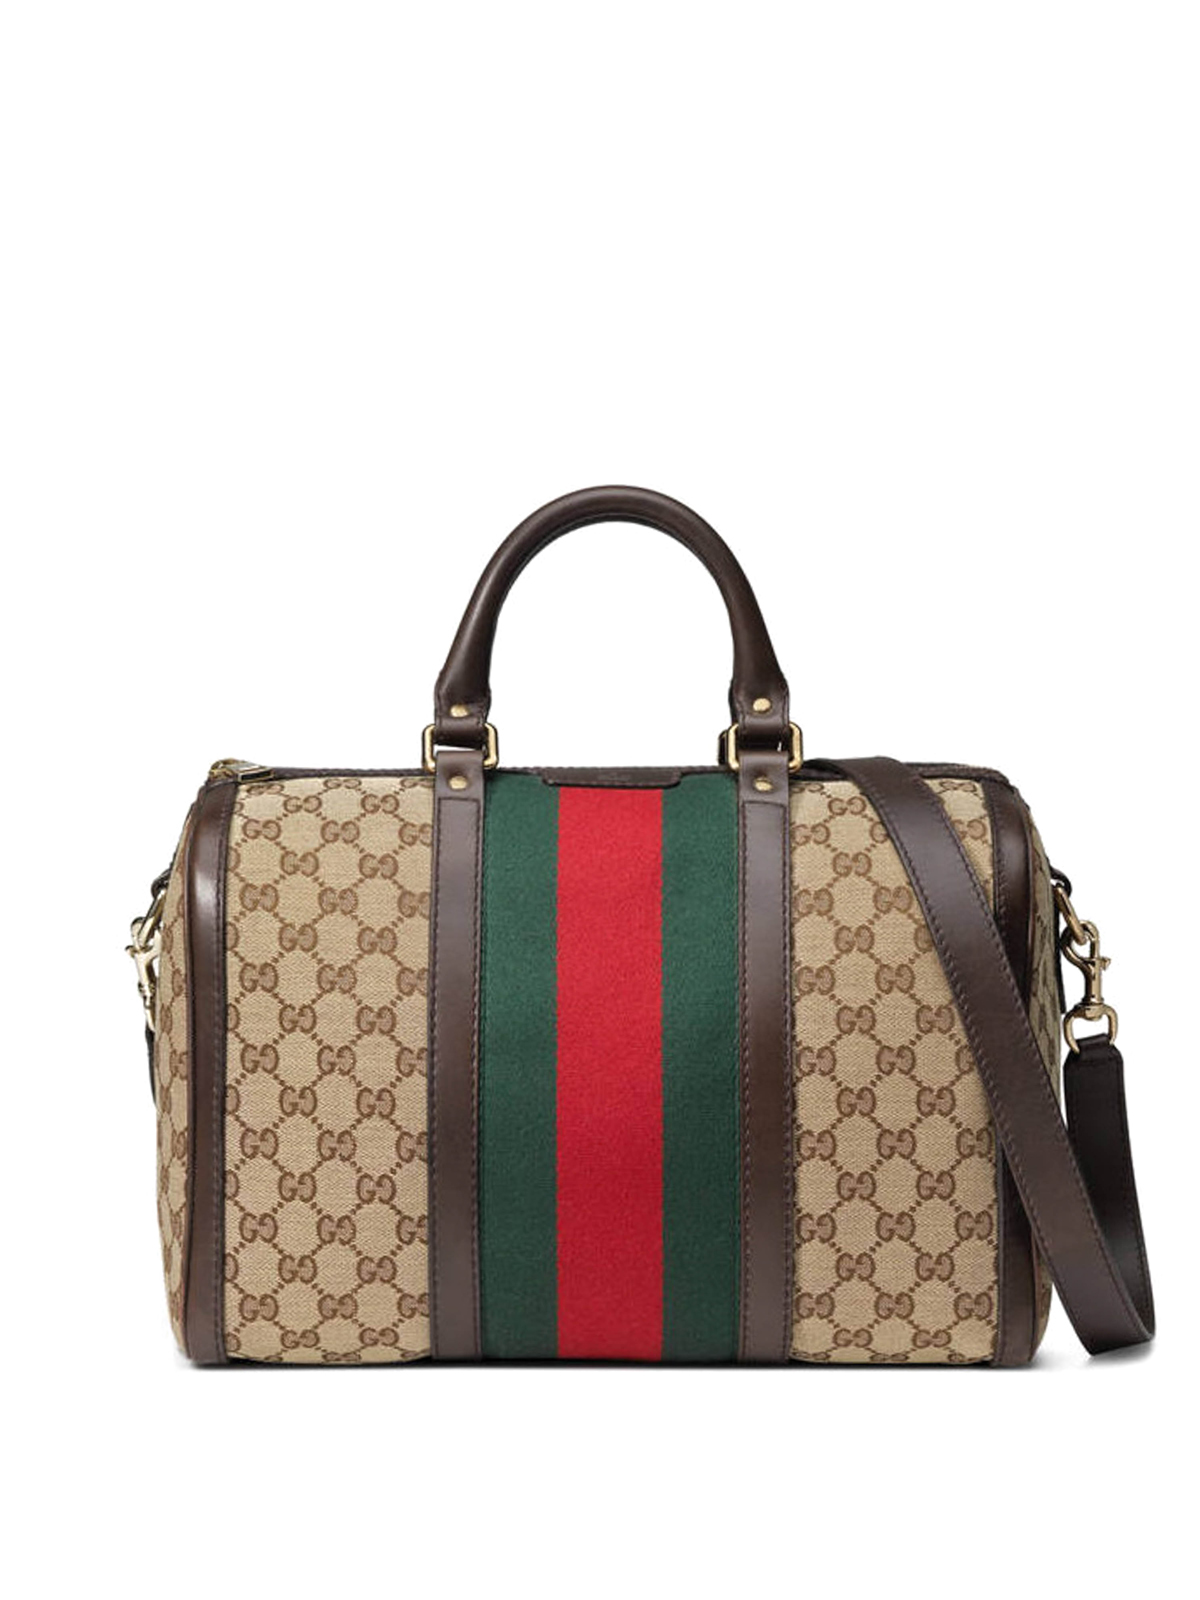 Gucci Bowling Bags Vintage Web Original Gg Boston Bag